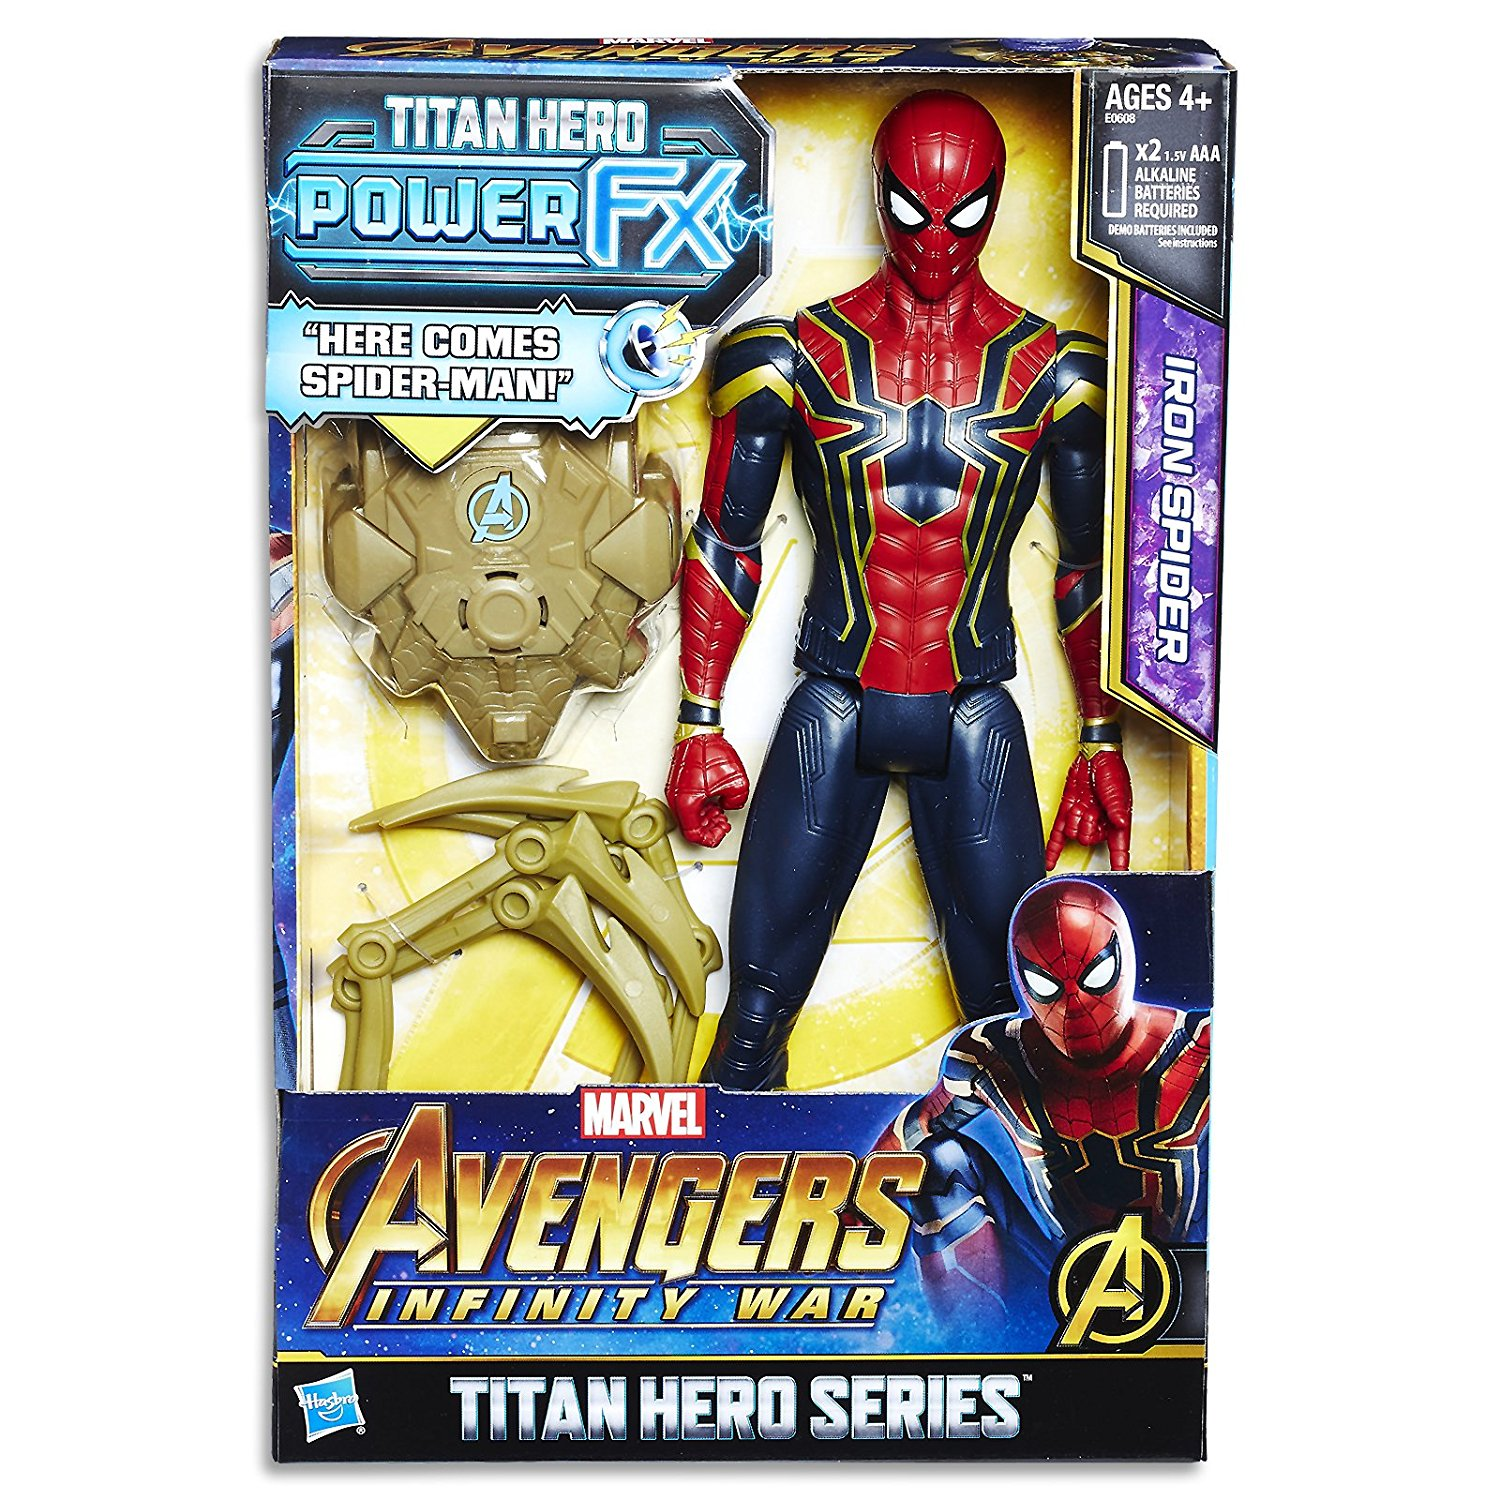 Marvel Avengers Infinity War Titan Hero Power FX Iron Spider